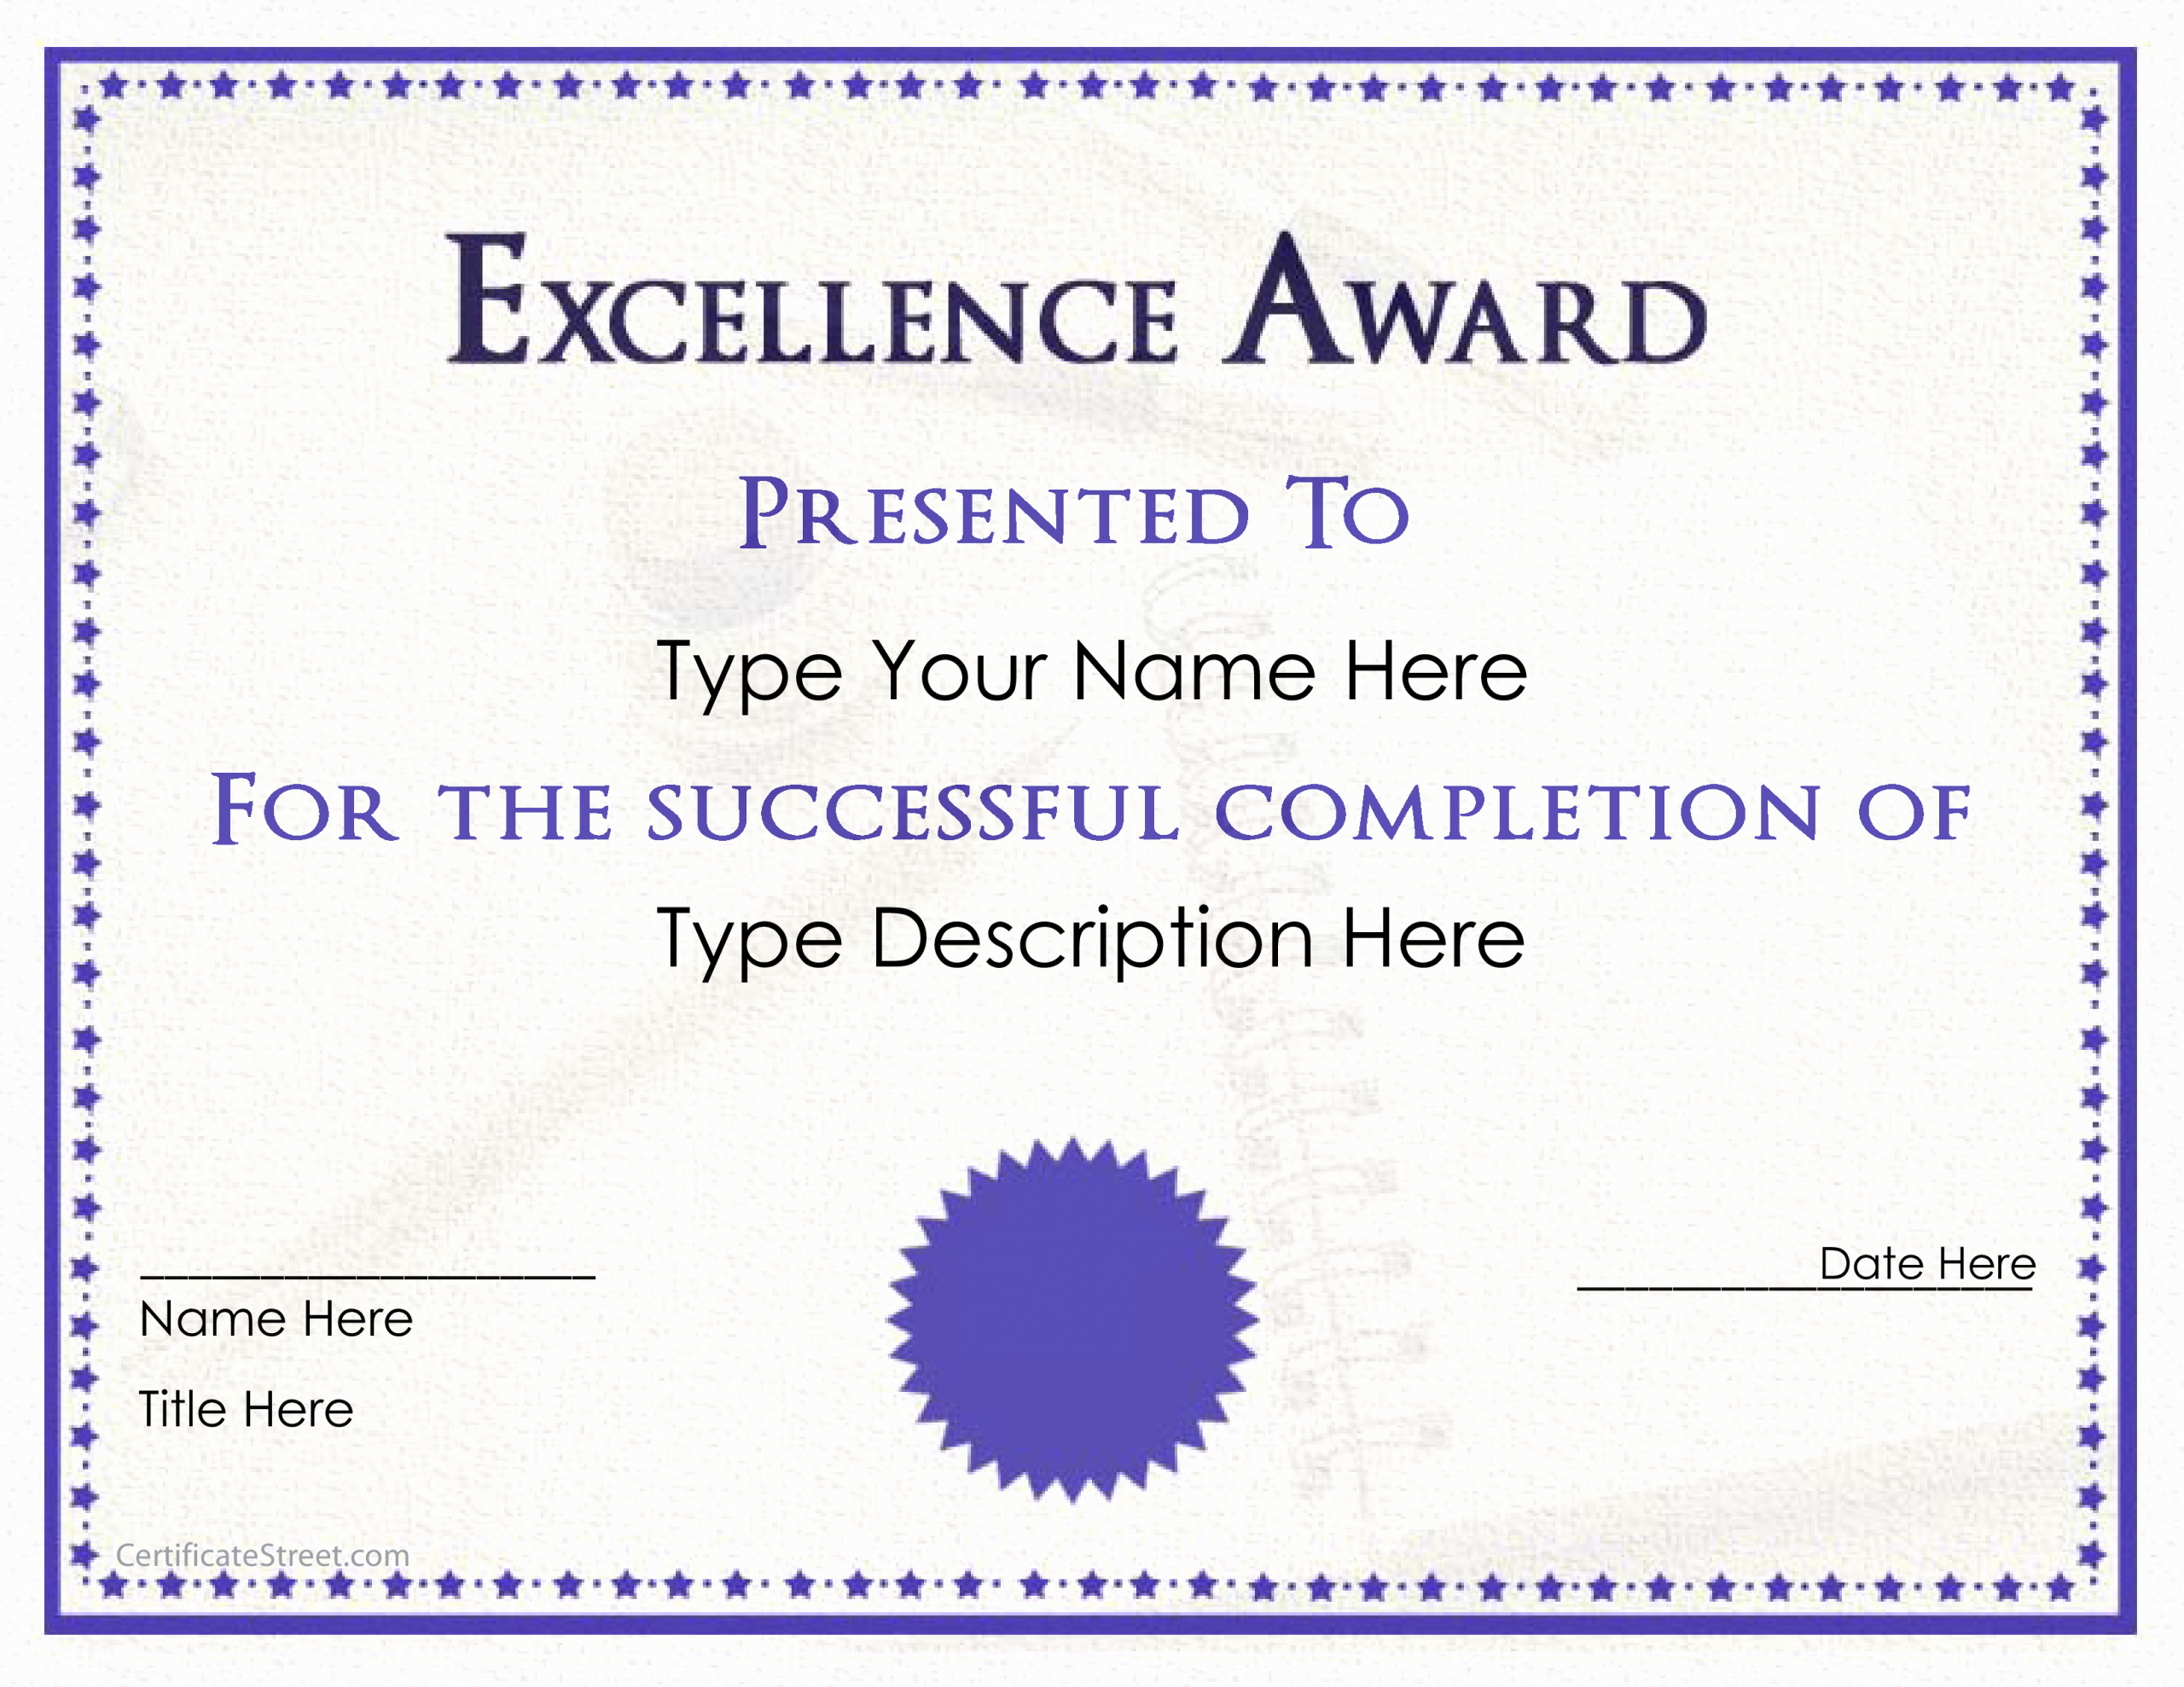 Award Certificate Template Free Download Unique Excellence Award Certificate